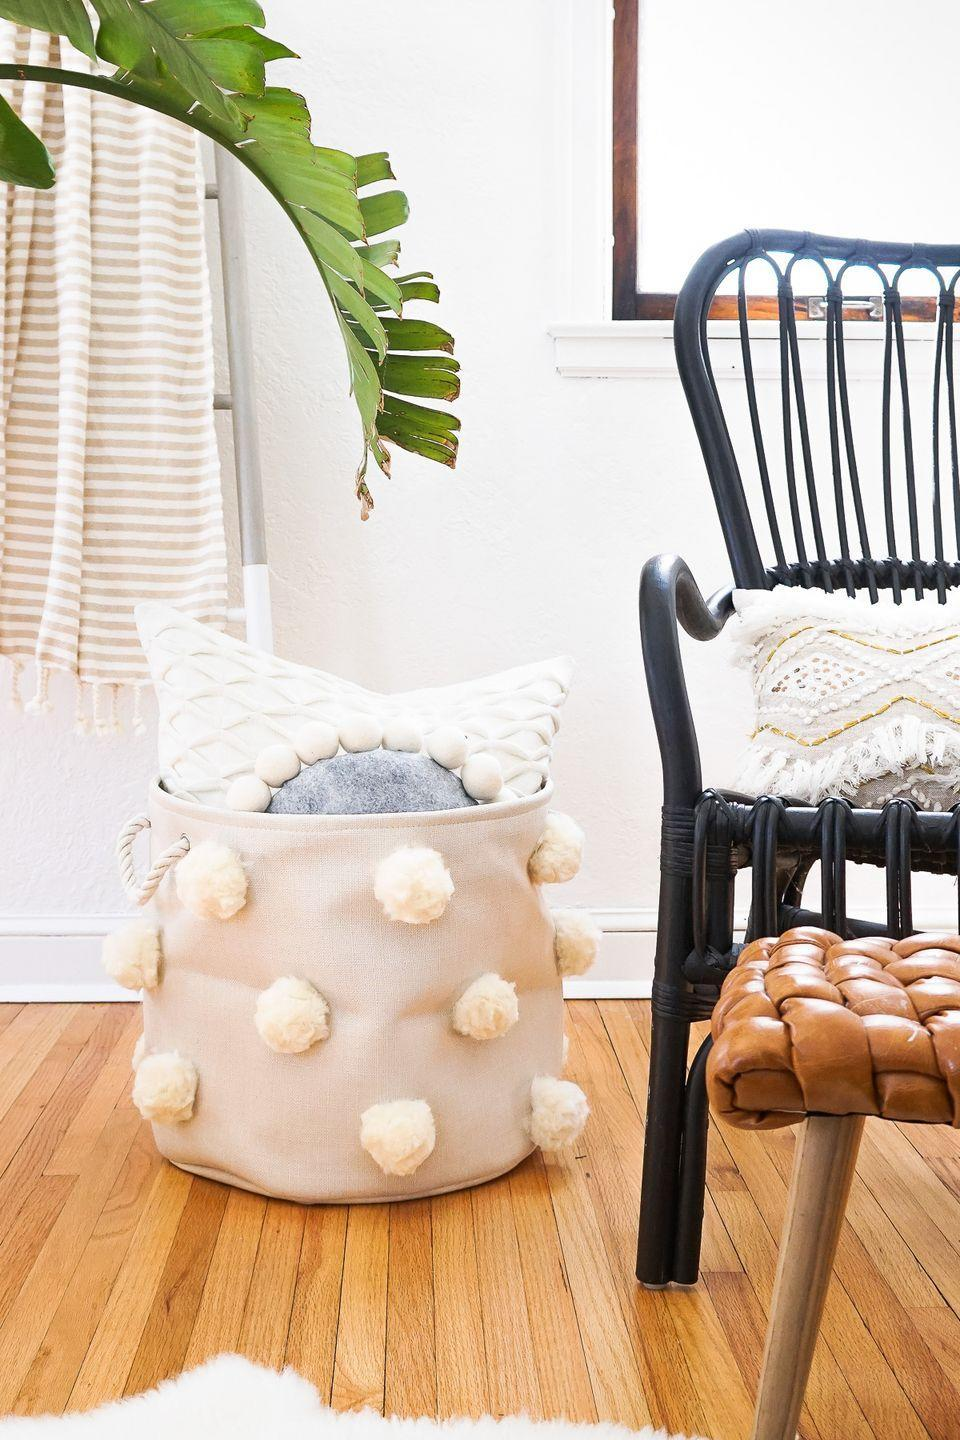 "<p>Keep pillows and throw blankets contained in these adorbs pom pom baskets. Bonus: They could also double as laundry hampers.</p><p>Get the tutorial at <a href=""https://sugarandcloth.com/diy-fluffy-pom-pom-bin/"" rel=""nofollow noopener"" target=""_blank"" data-ylk=""slk:Sugar & Cloth"" class=""link rapid-noclick-resp"">Sugar & Cloth</a>.</p>"